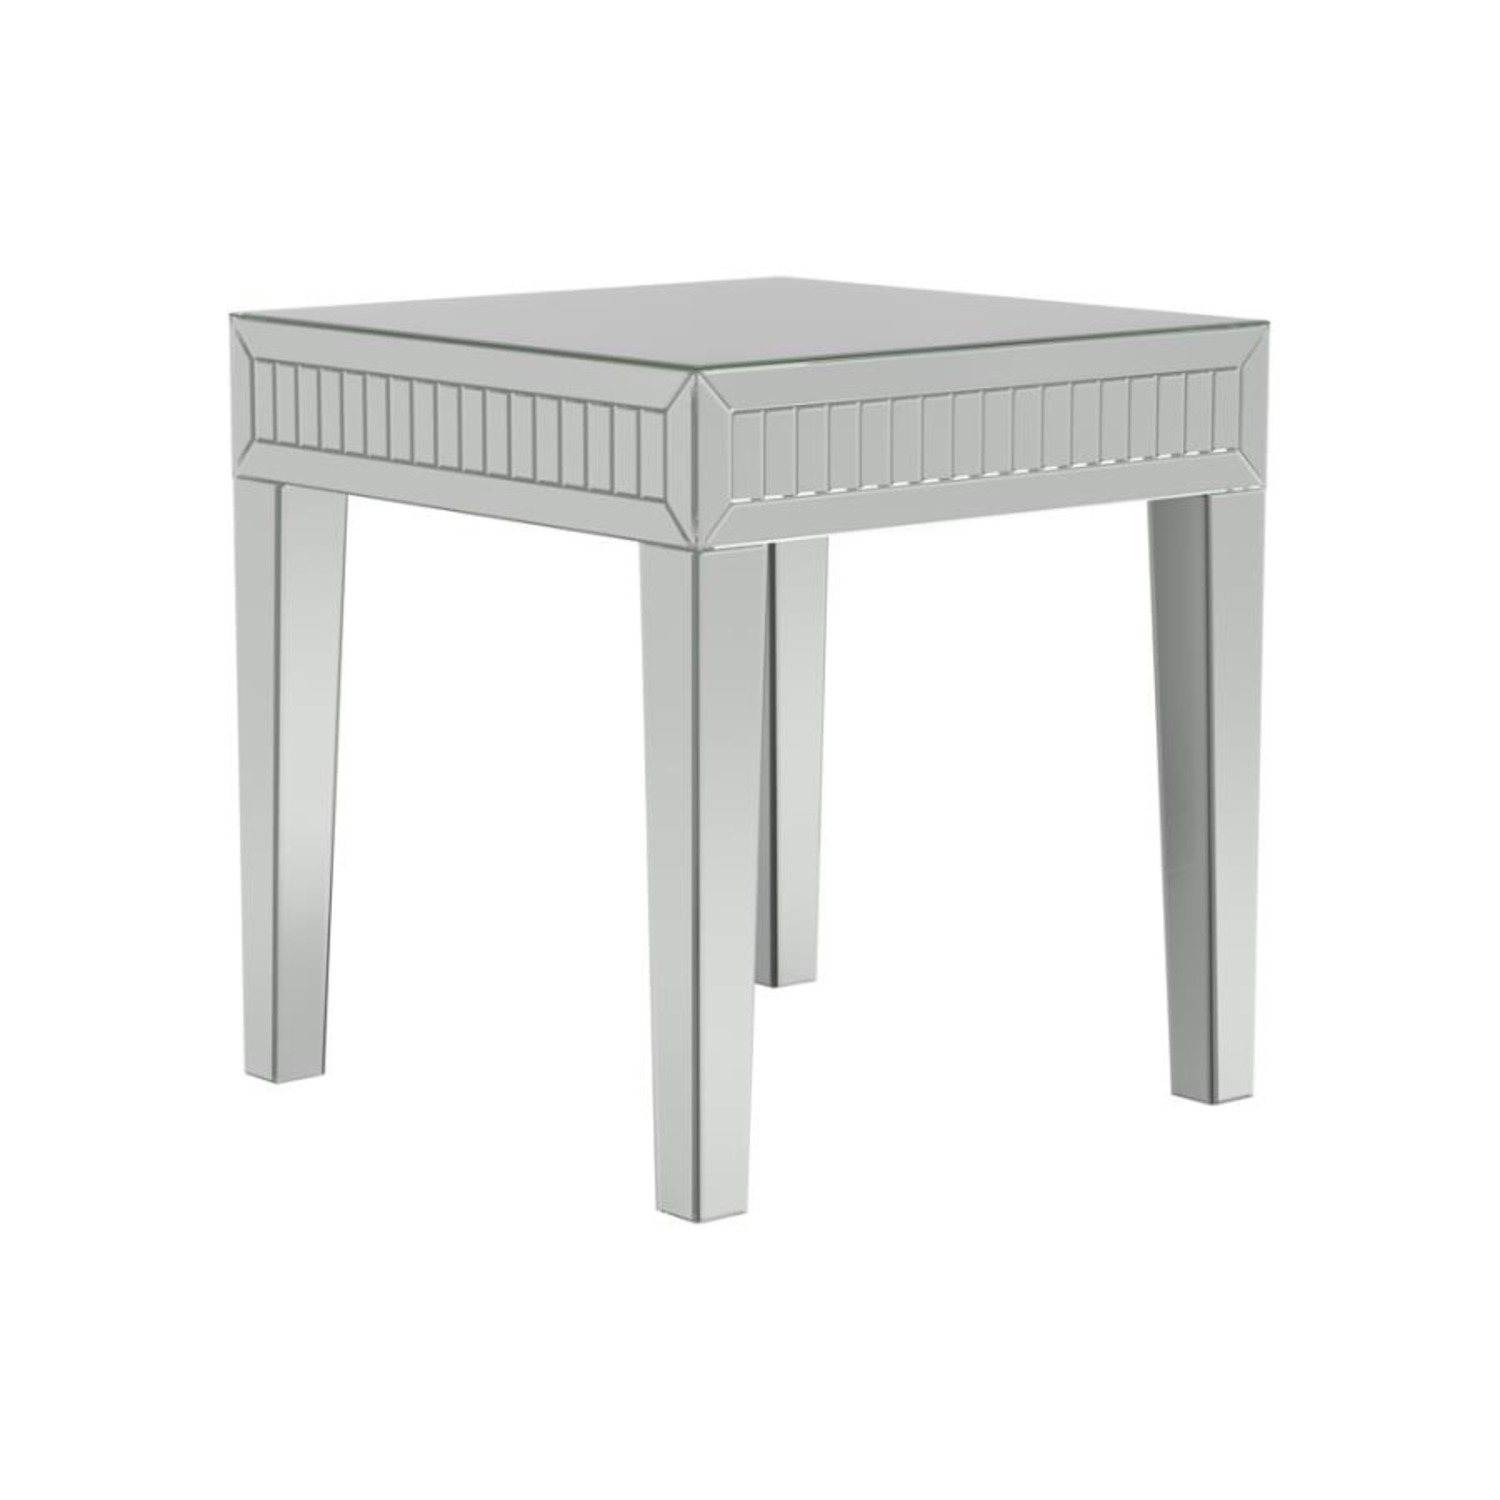 Ultra-Glam Side Table In Silver Finish - image-0